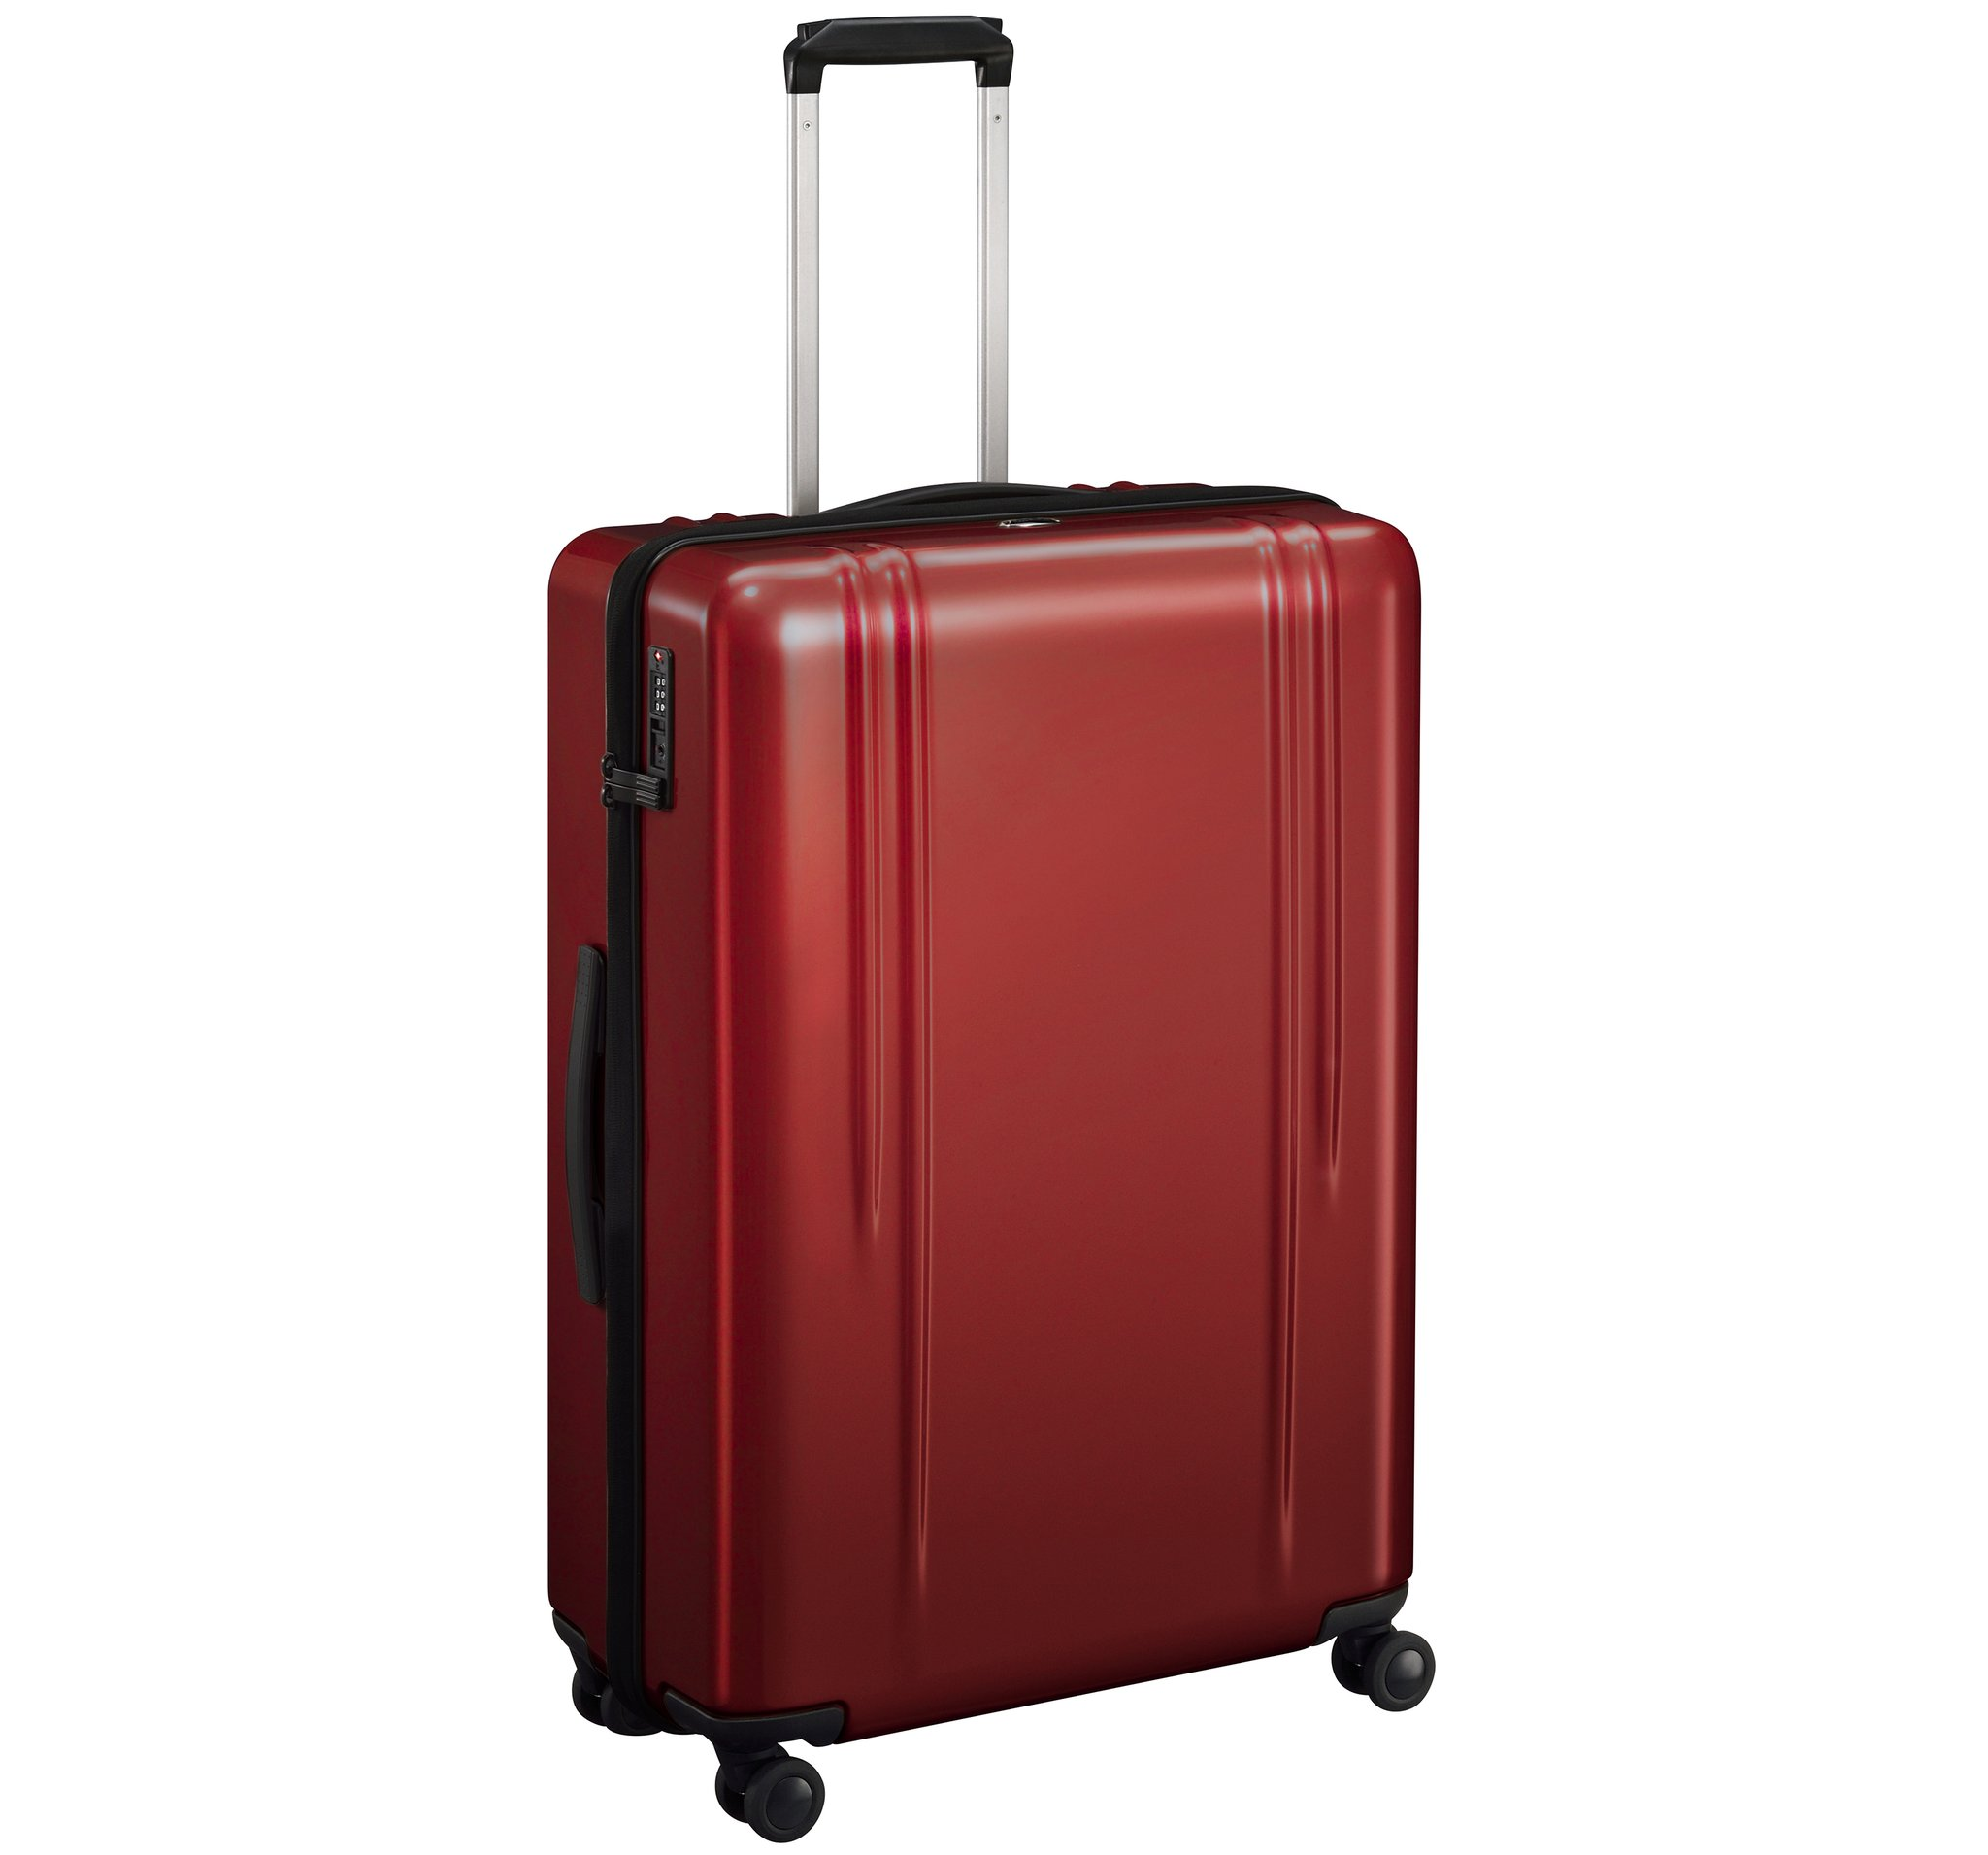 "ZRL - 28"" Lightweight Luggage by Zero Halliburton (Color: Red)"